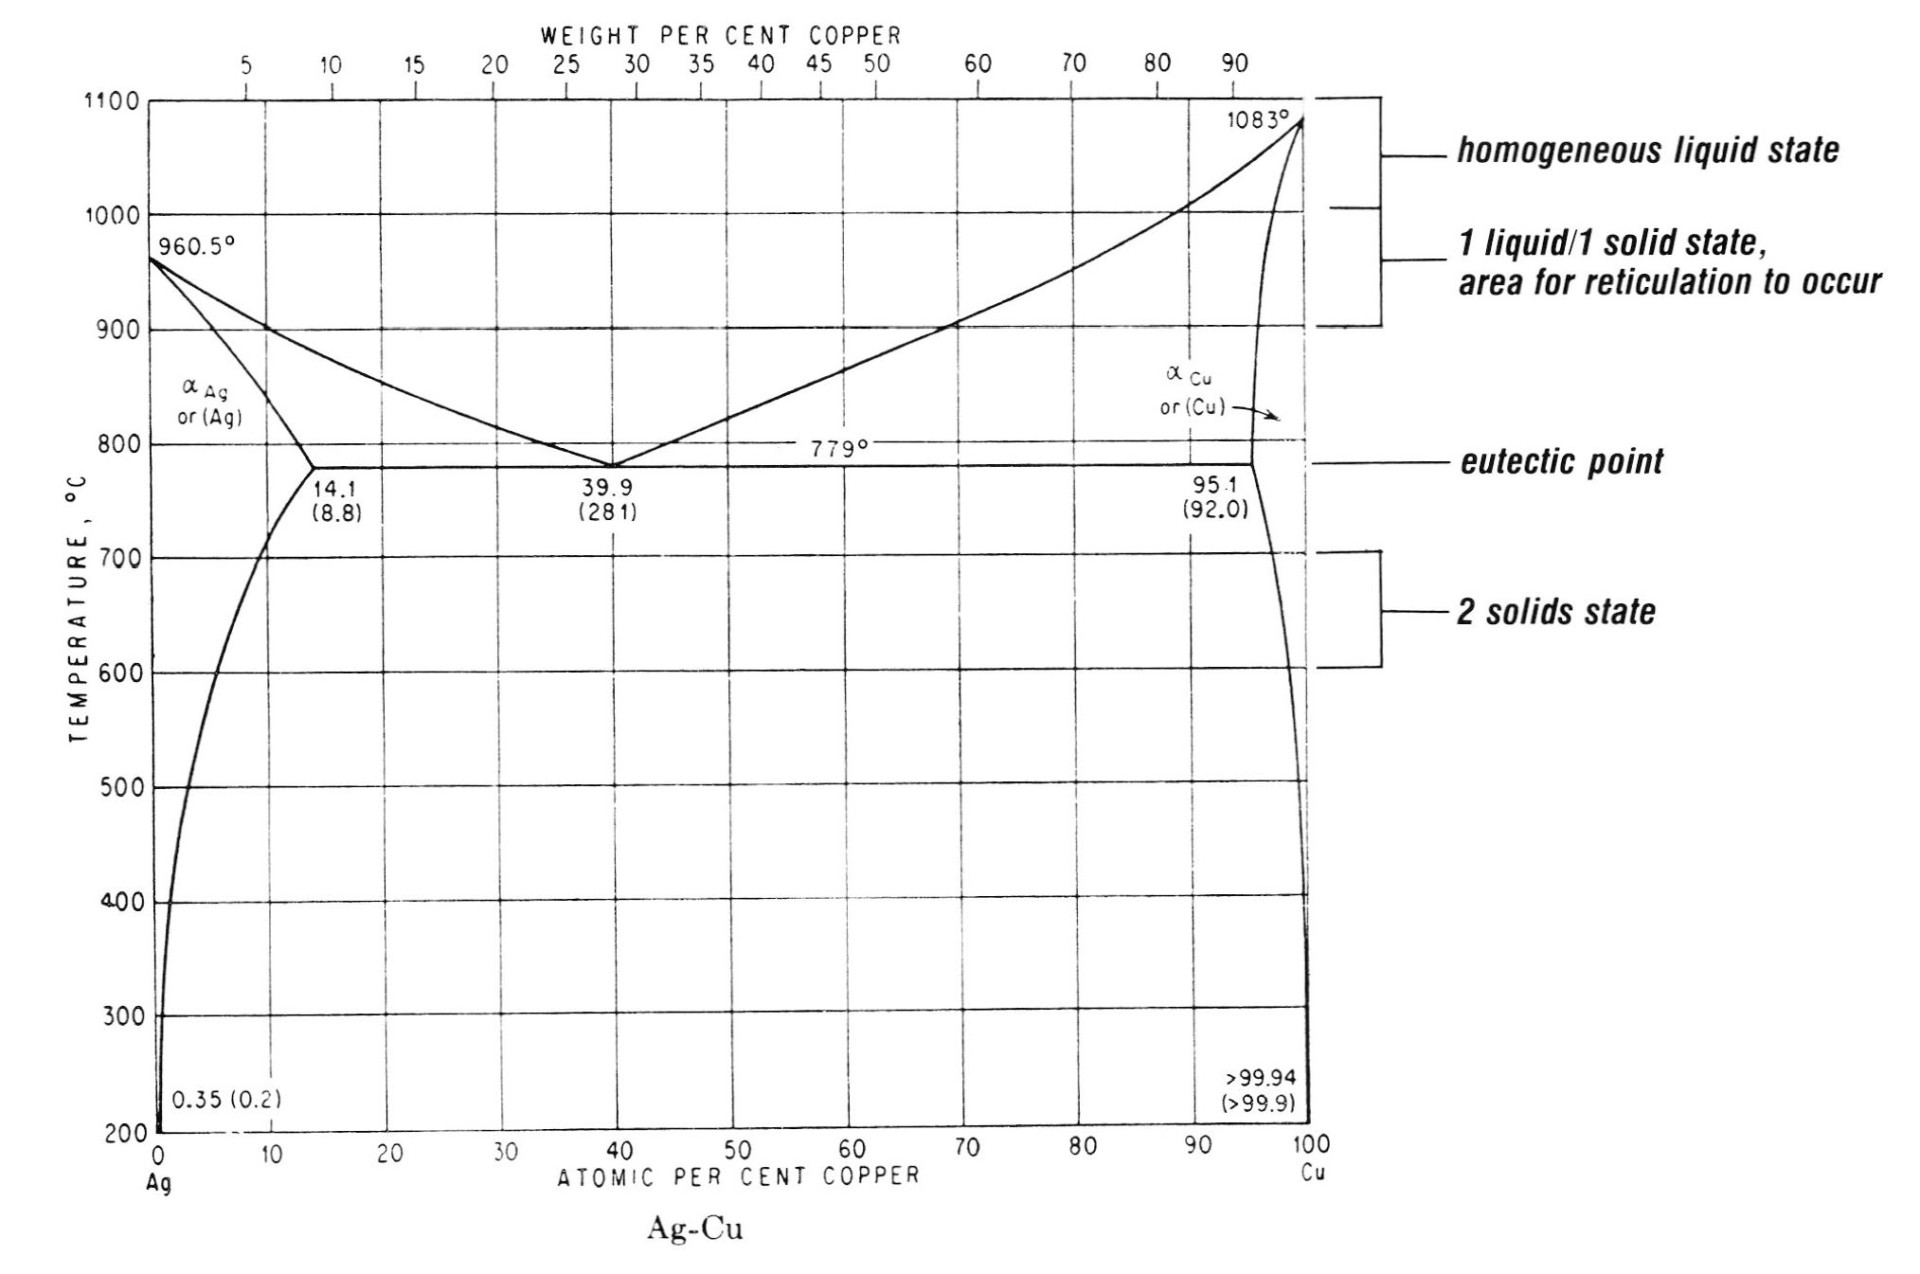 hight resolution of charts from constitution of binary alloys by dr max hanson copyright 1958 published by mcgraw hill new york reproduced with permission of mcgraw hill